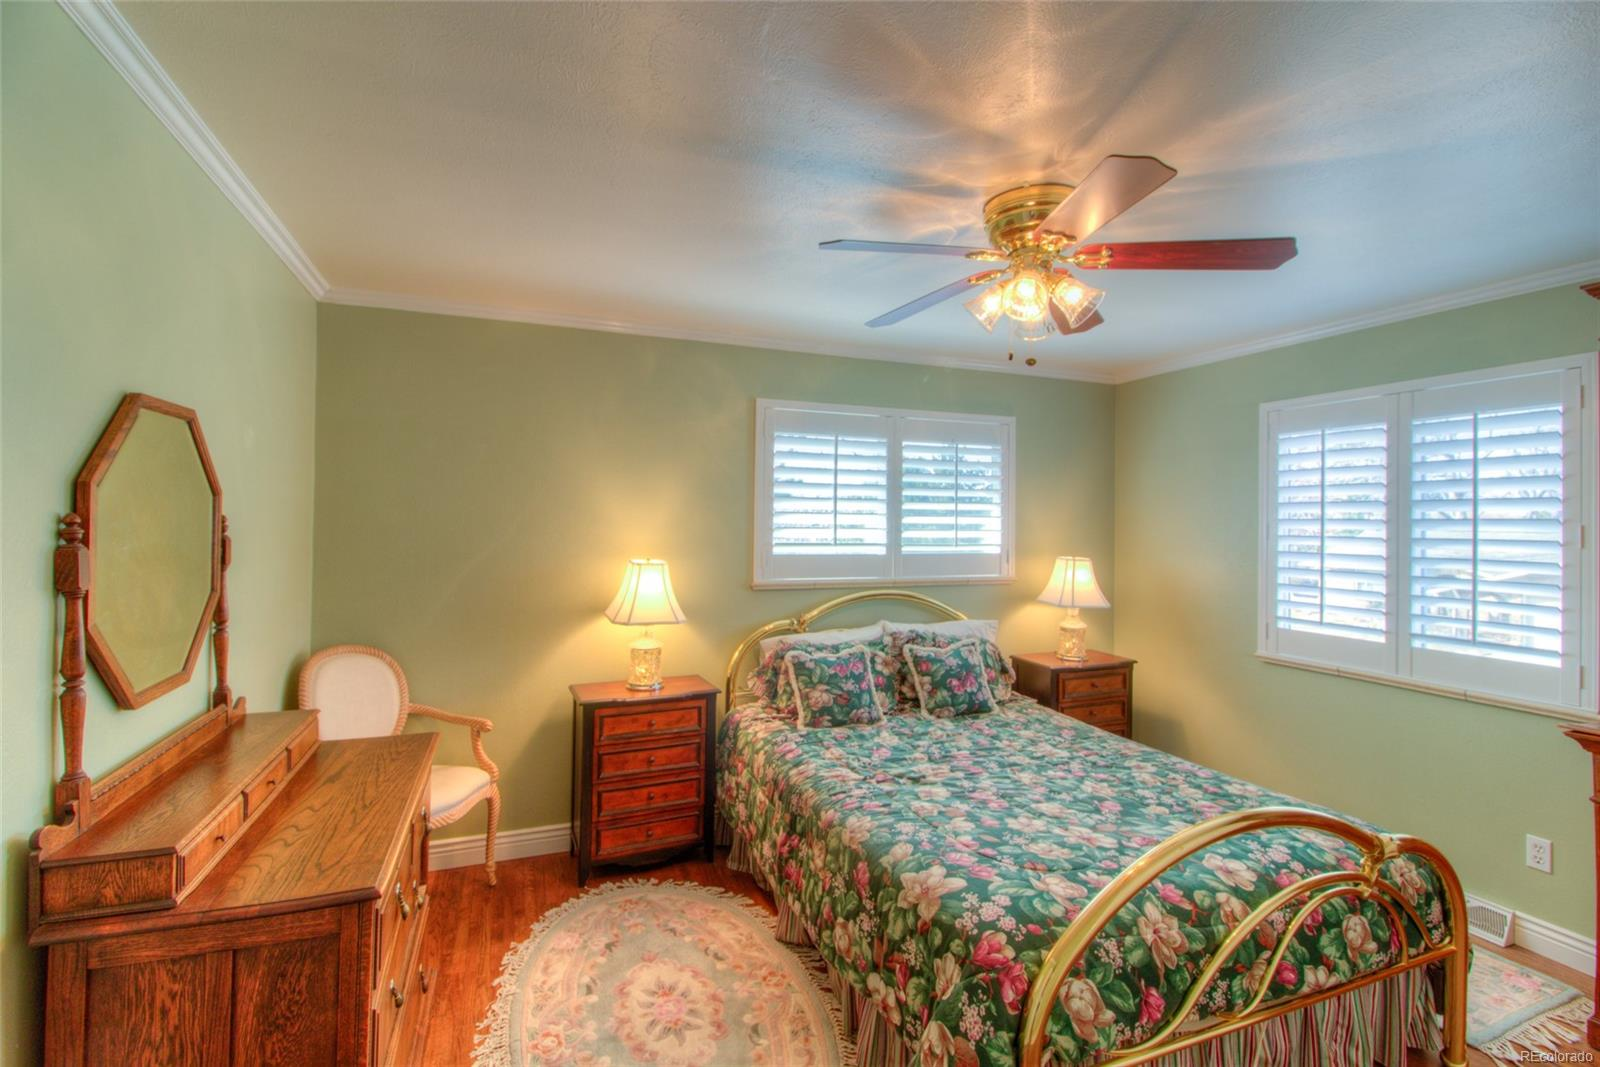 3rd Bedroom upstairs with crown molding, plantation shutters and those beautiful wood floors